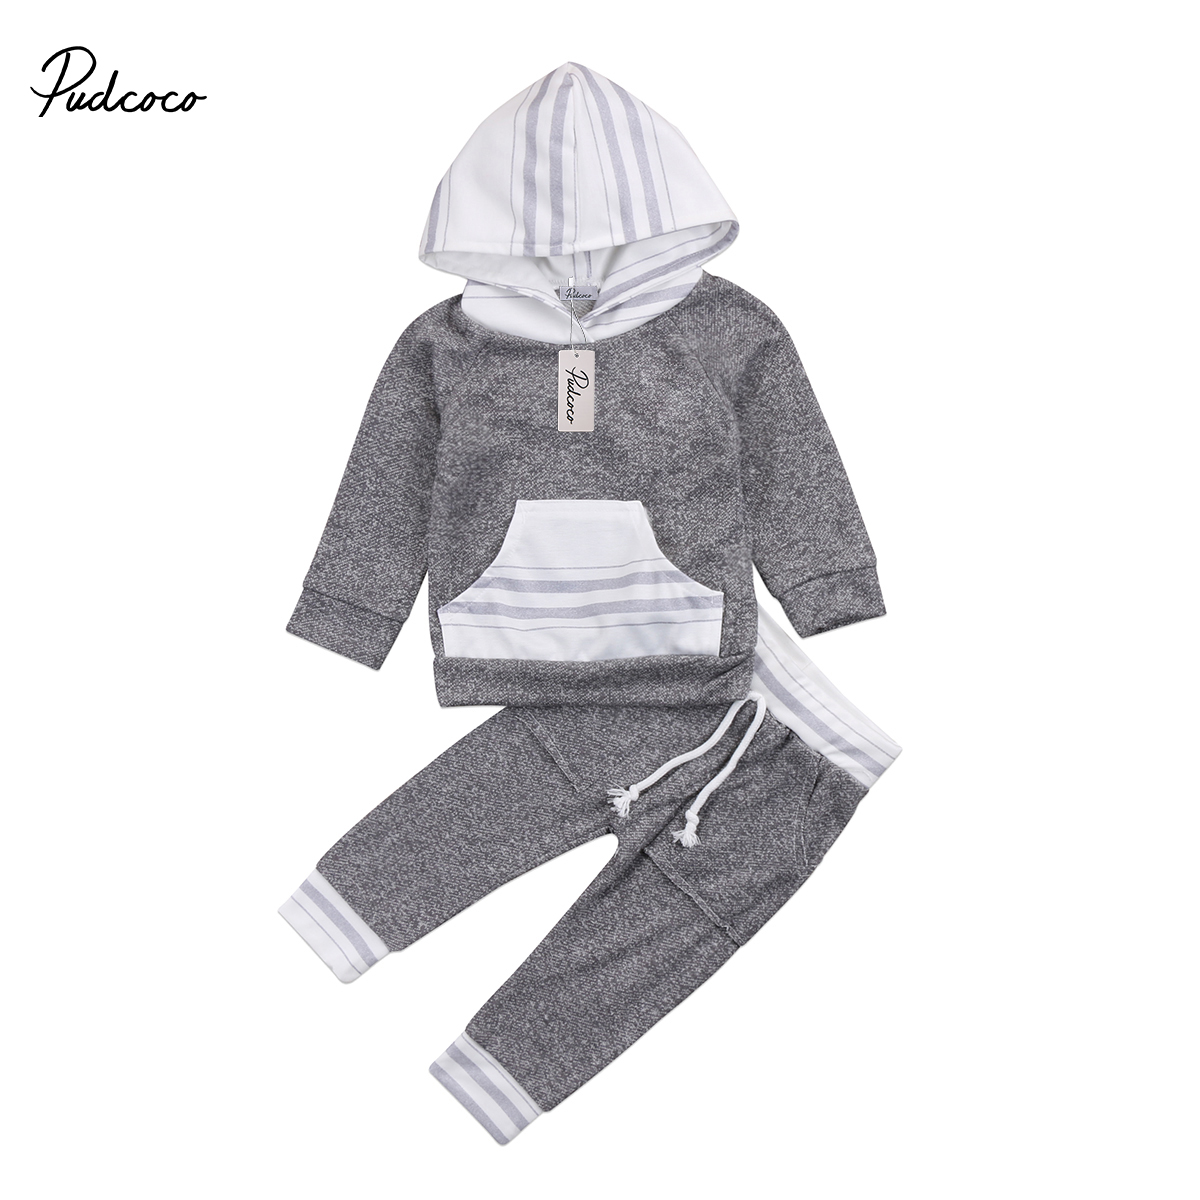 2pcs Baby Clothing Newborn Kids Baby Boy Long sleeves Hooded Sweater Tops Pants Kids Baby Boys Casual Outfits Set Clothes 0-4T